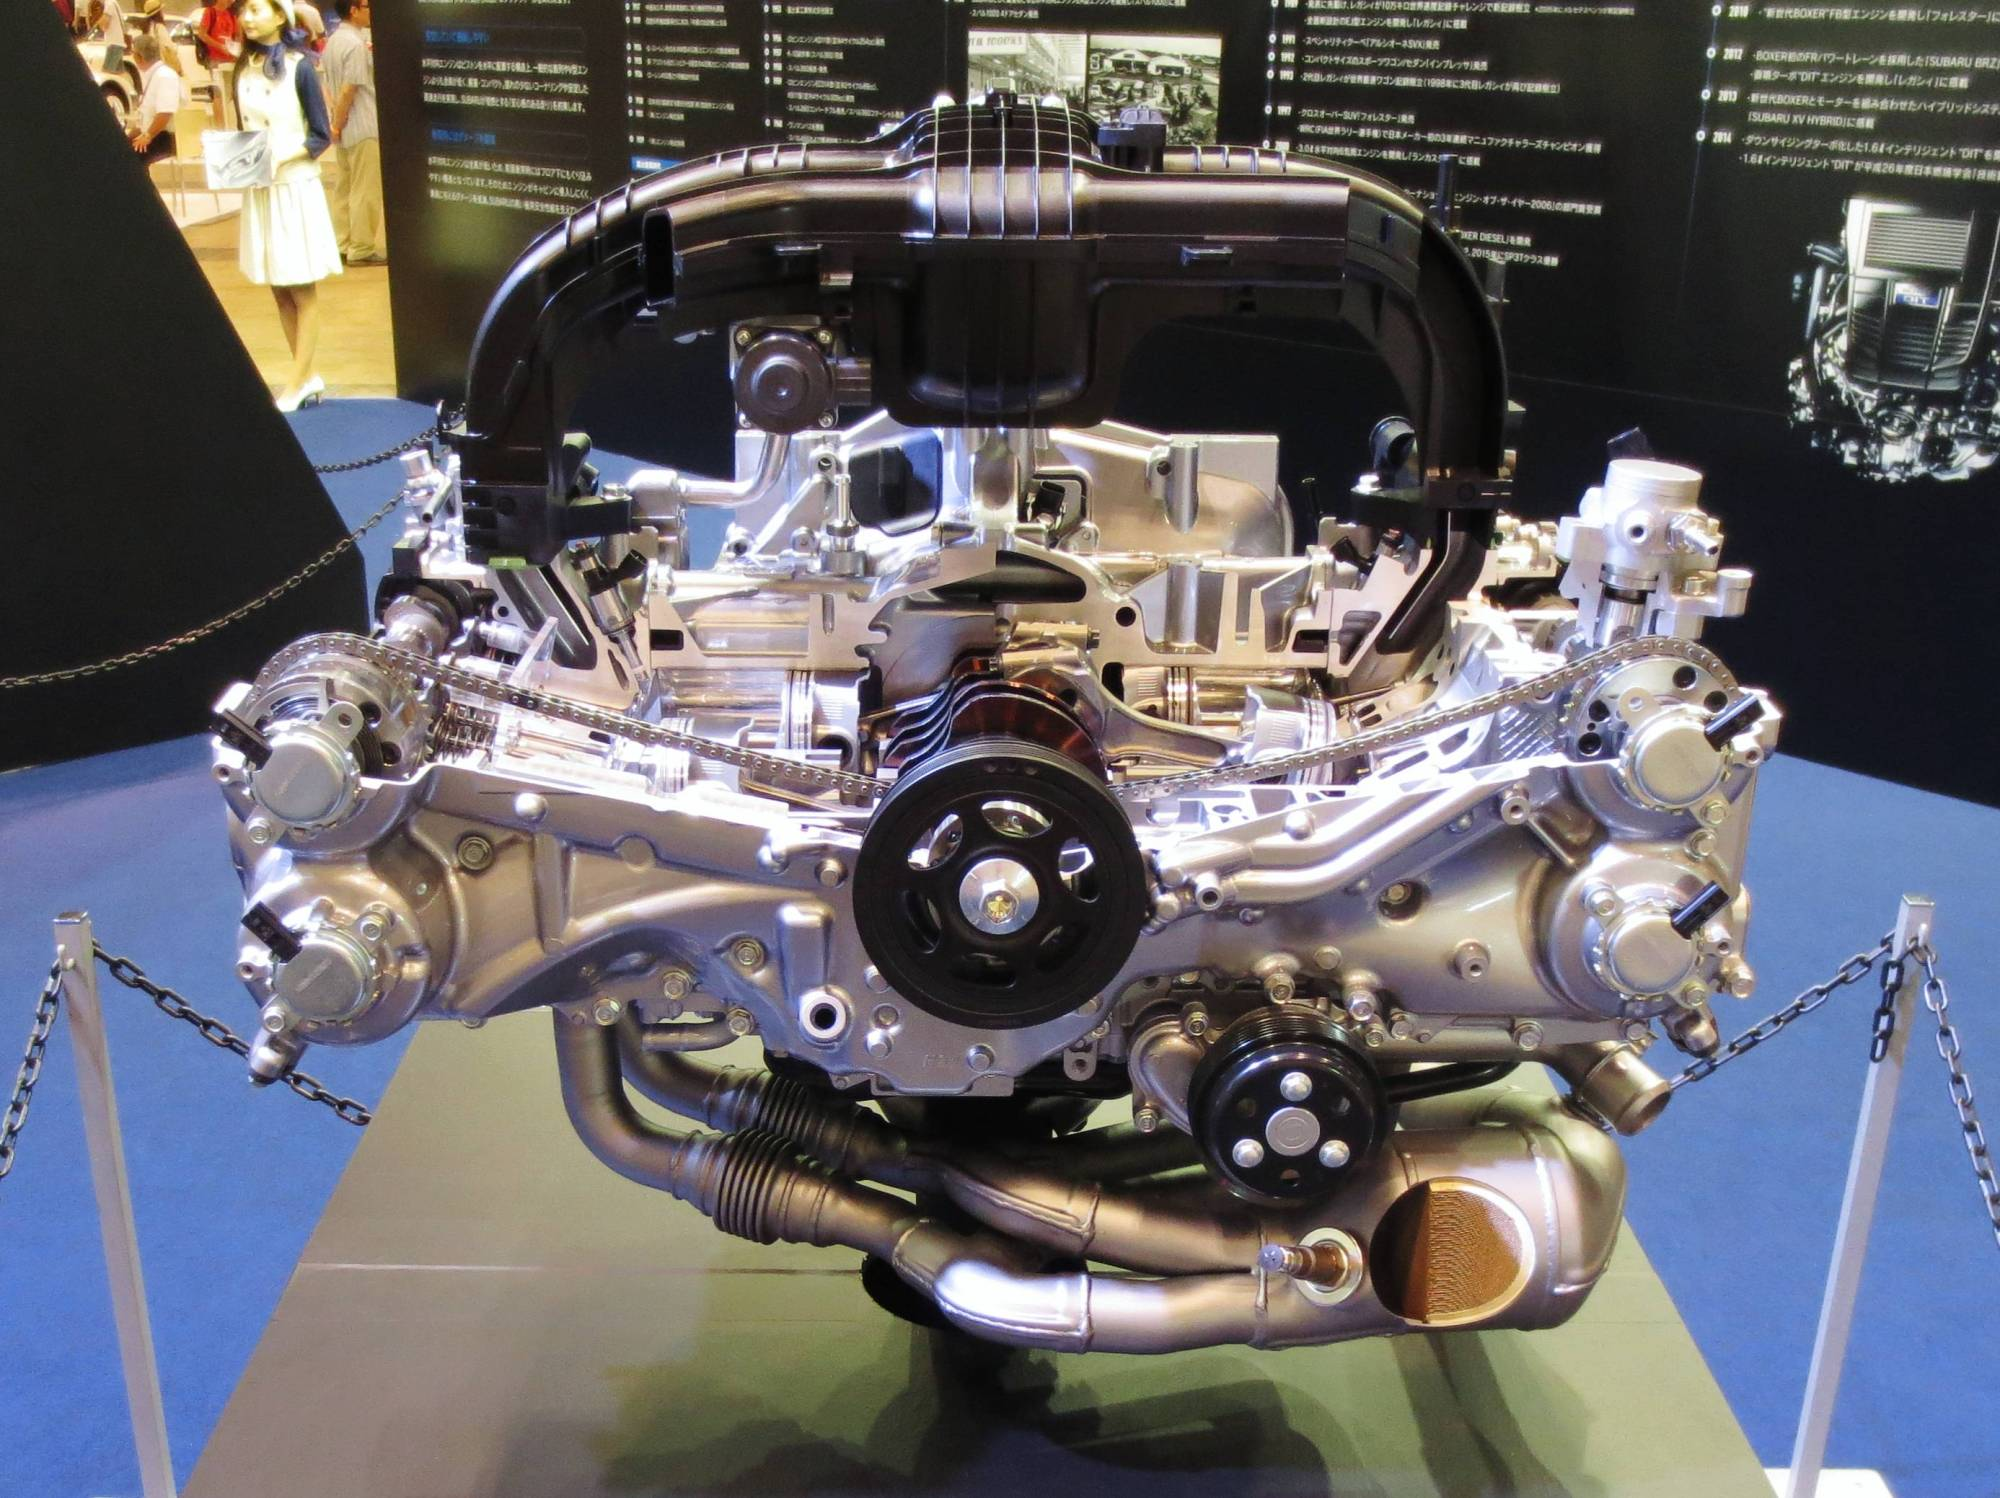 hight resolution of subaru boxer turbo engine diagram